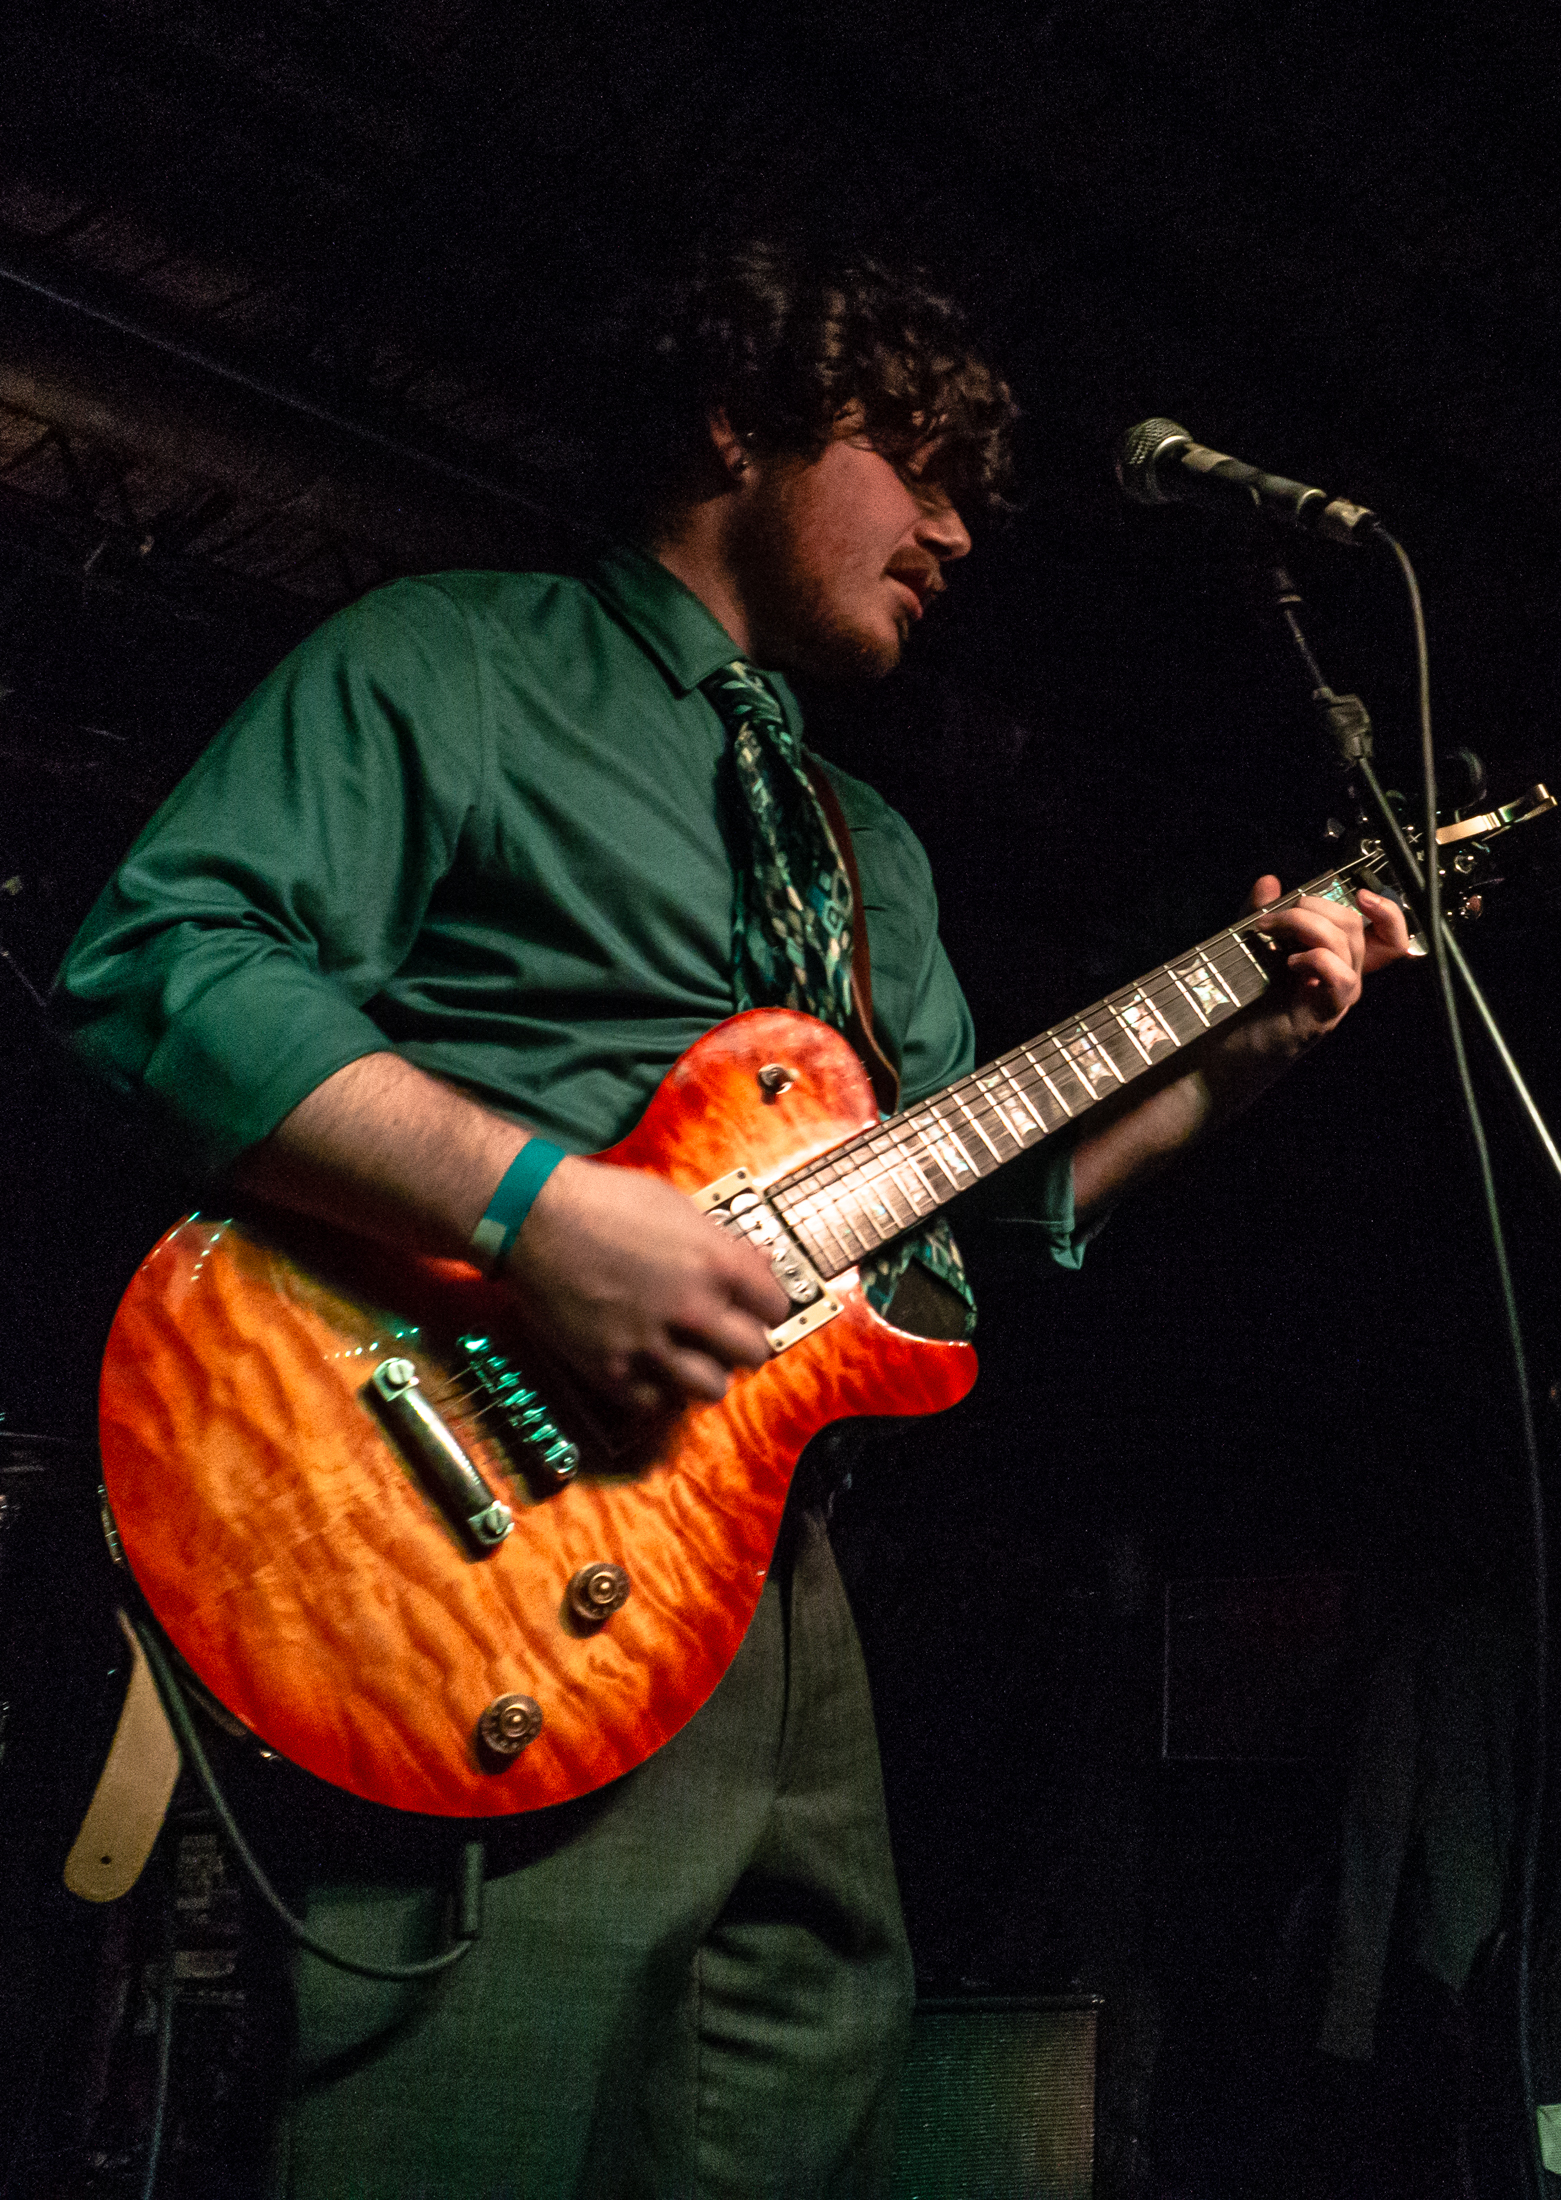 Peter Dressel, vocalist and rhythm guitarist, performing at Gabe's Oasis in Iowa City.  Photo by Melinda Ehrp